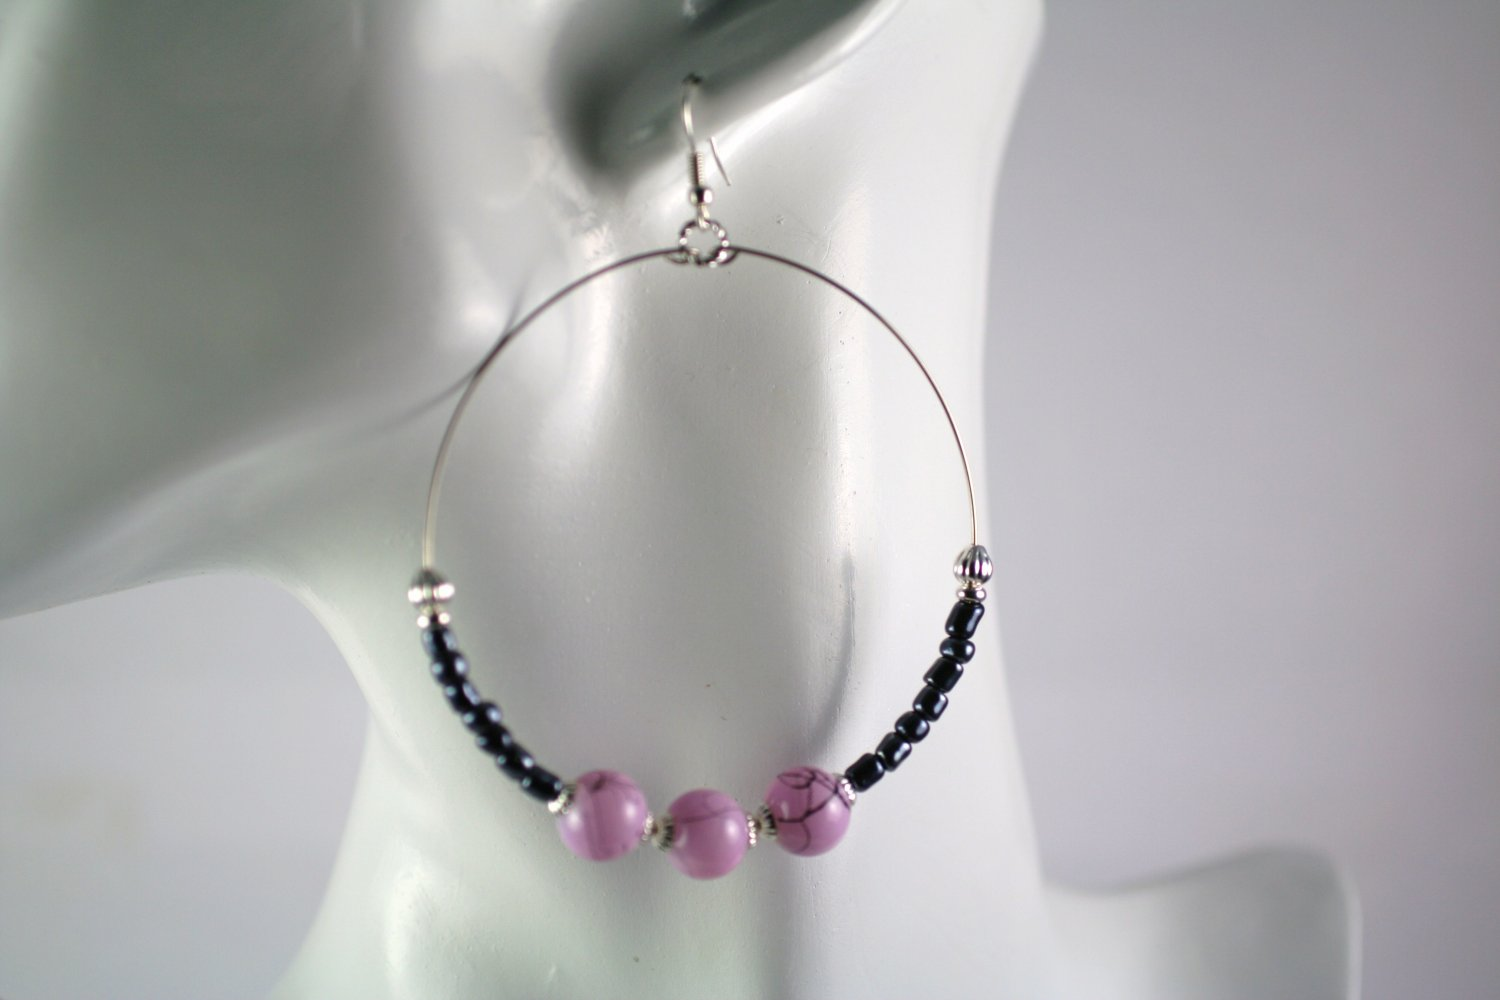 Large Silver Hoop Earrings with Purple and Black  Glass Beads  2.5 in.  Handcrafted Jewelry